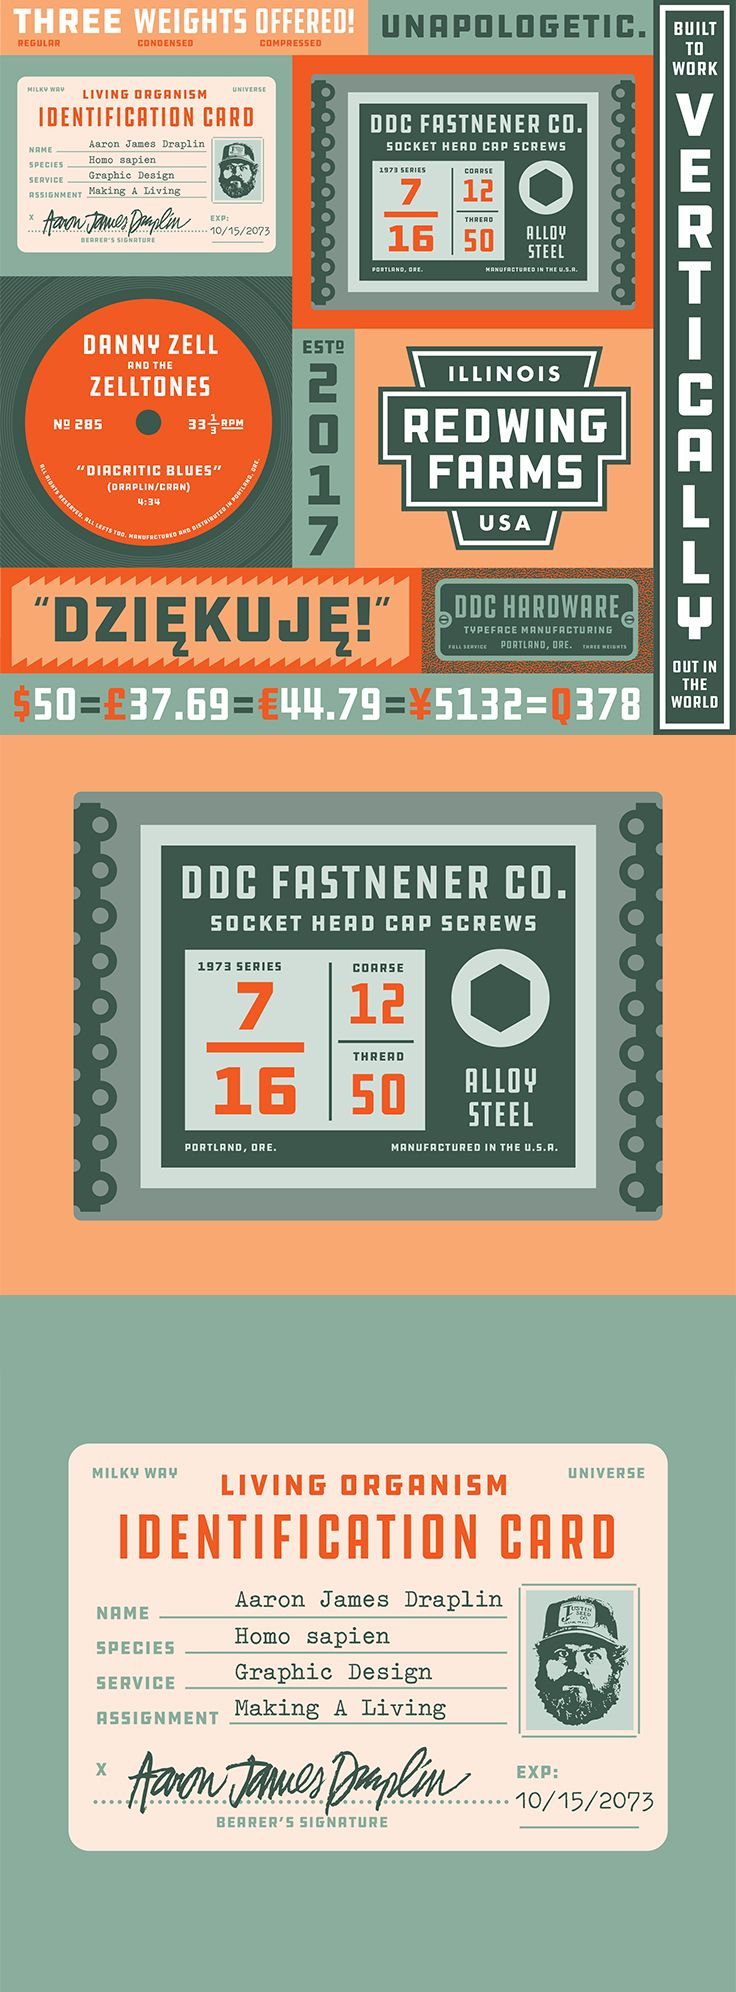 FREE FONT   Download a free font designed by legendary graphic designer Aaron Draplin. DDC Hardware is a typeface inspired by hard working blue collars and have really nice retro look. Download for free on losttype.com